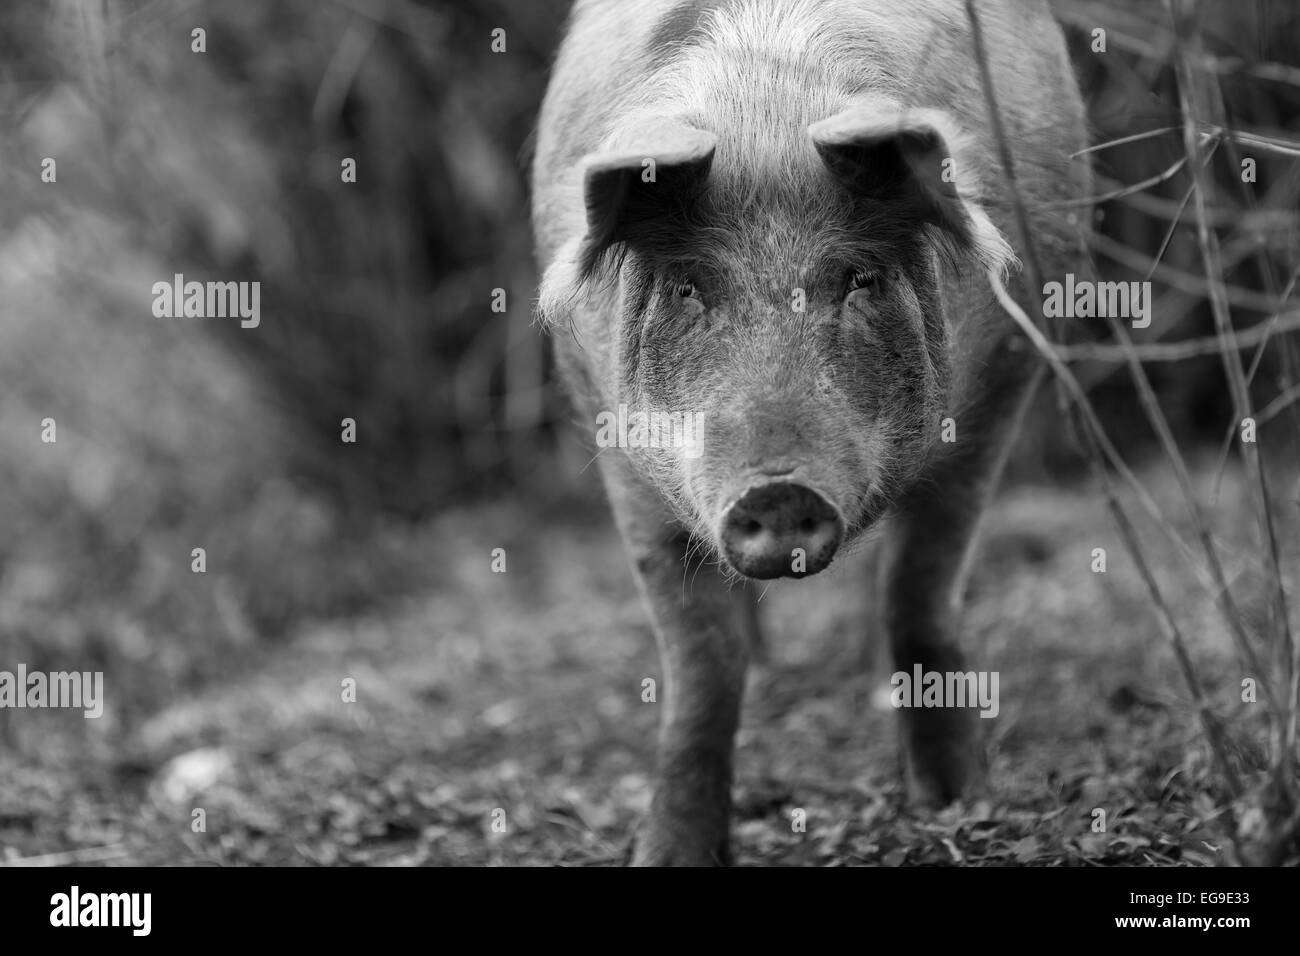 Black and white photo of a pig, staring at the camera - Stock Image